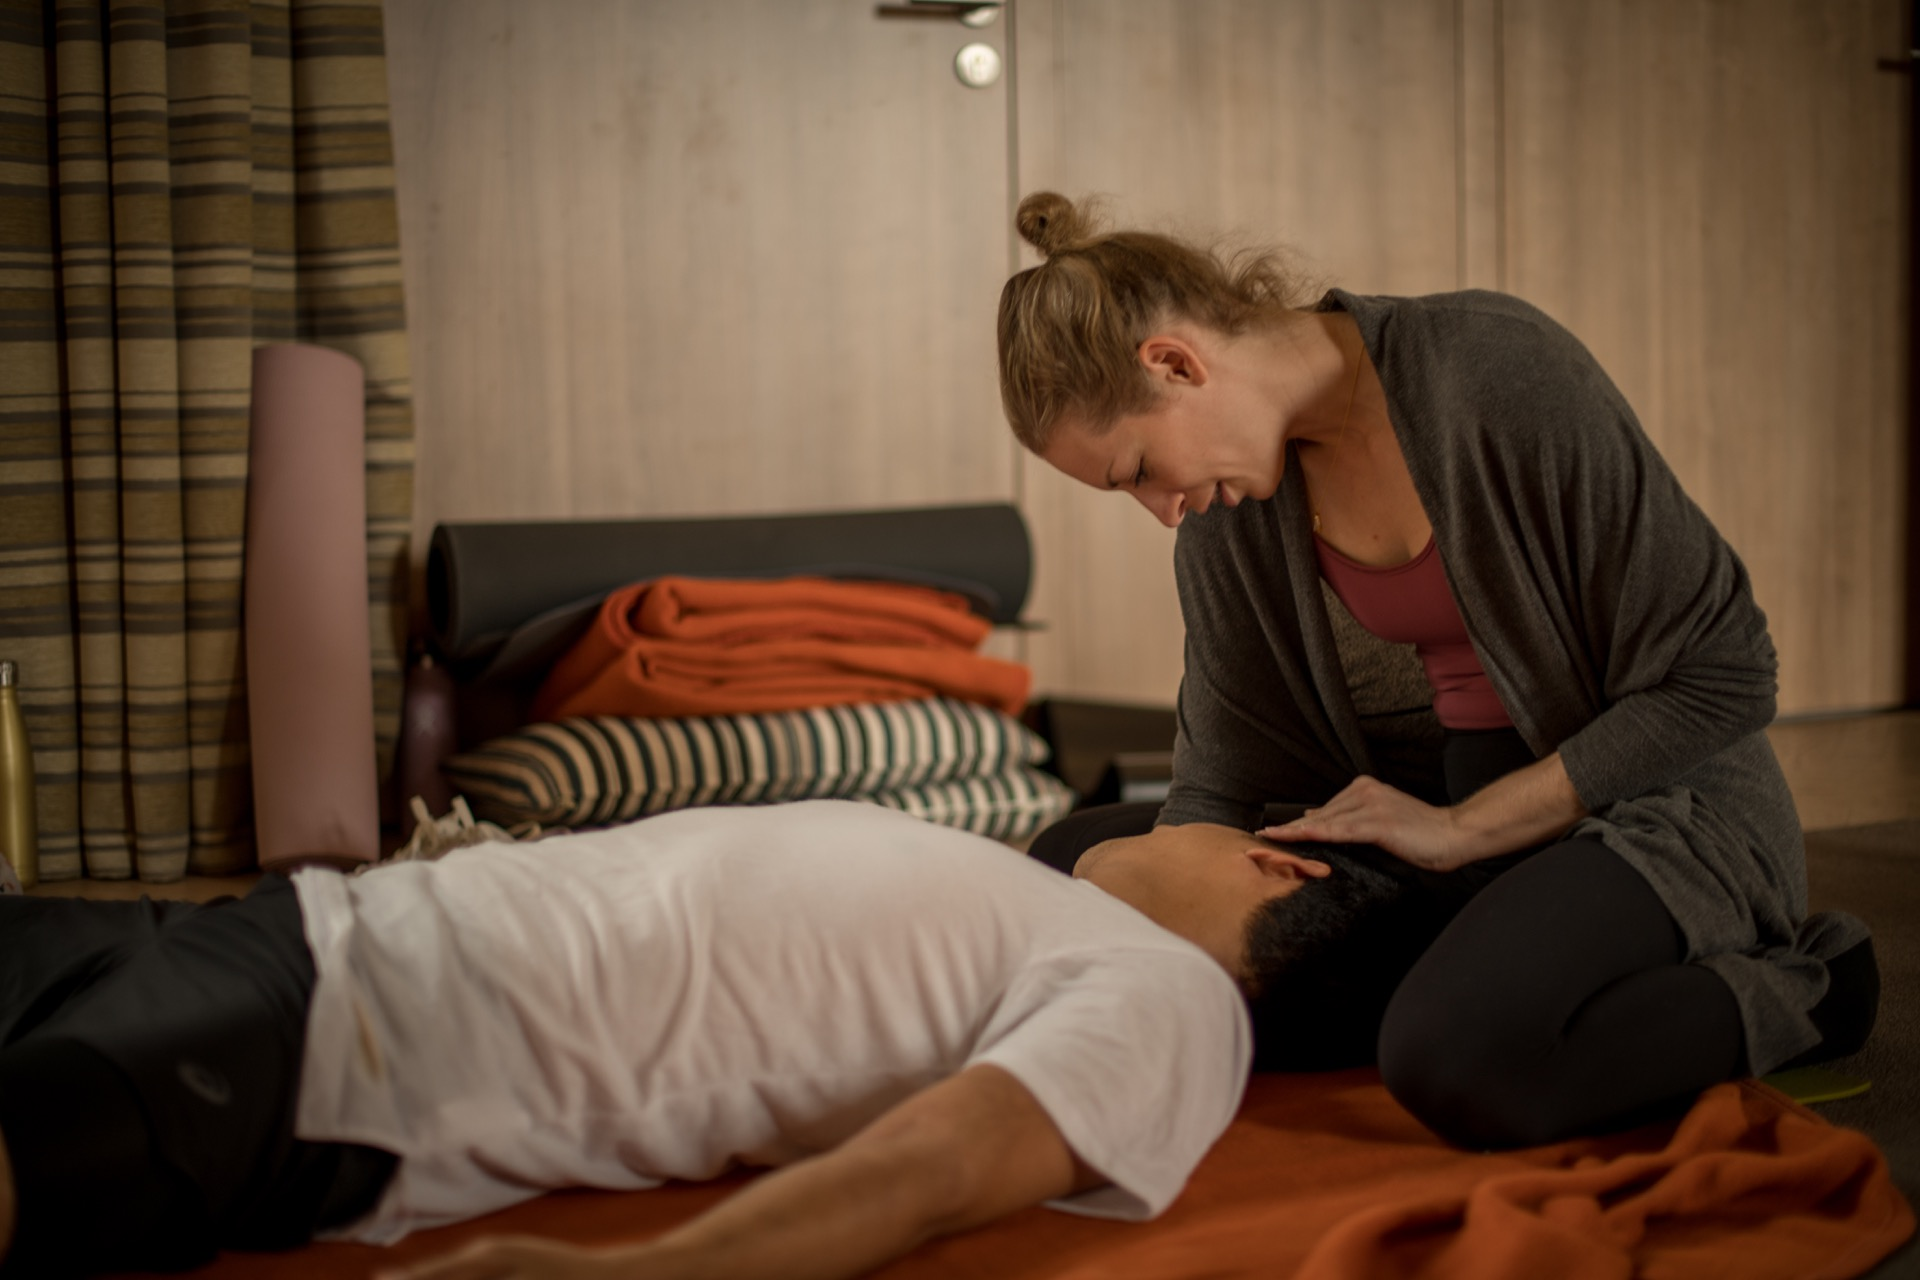 A-New-Beginning-Hie-Kim-Yoga-Retreat-Alina-Matis-Photography-092 - Hie Kim Yoga - Yoga Retreat - Yoga Workshops und Reisen